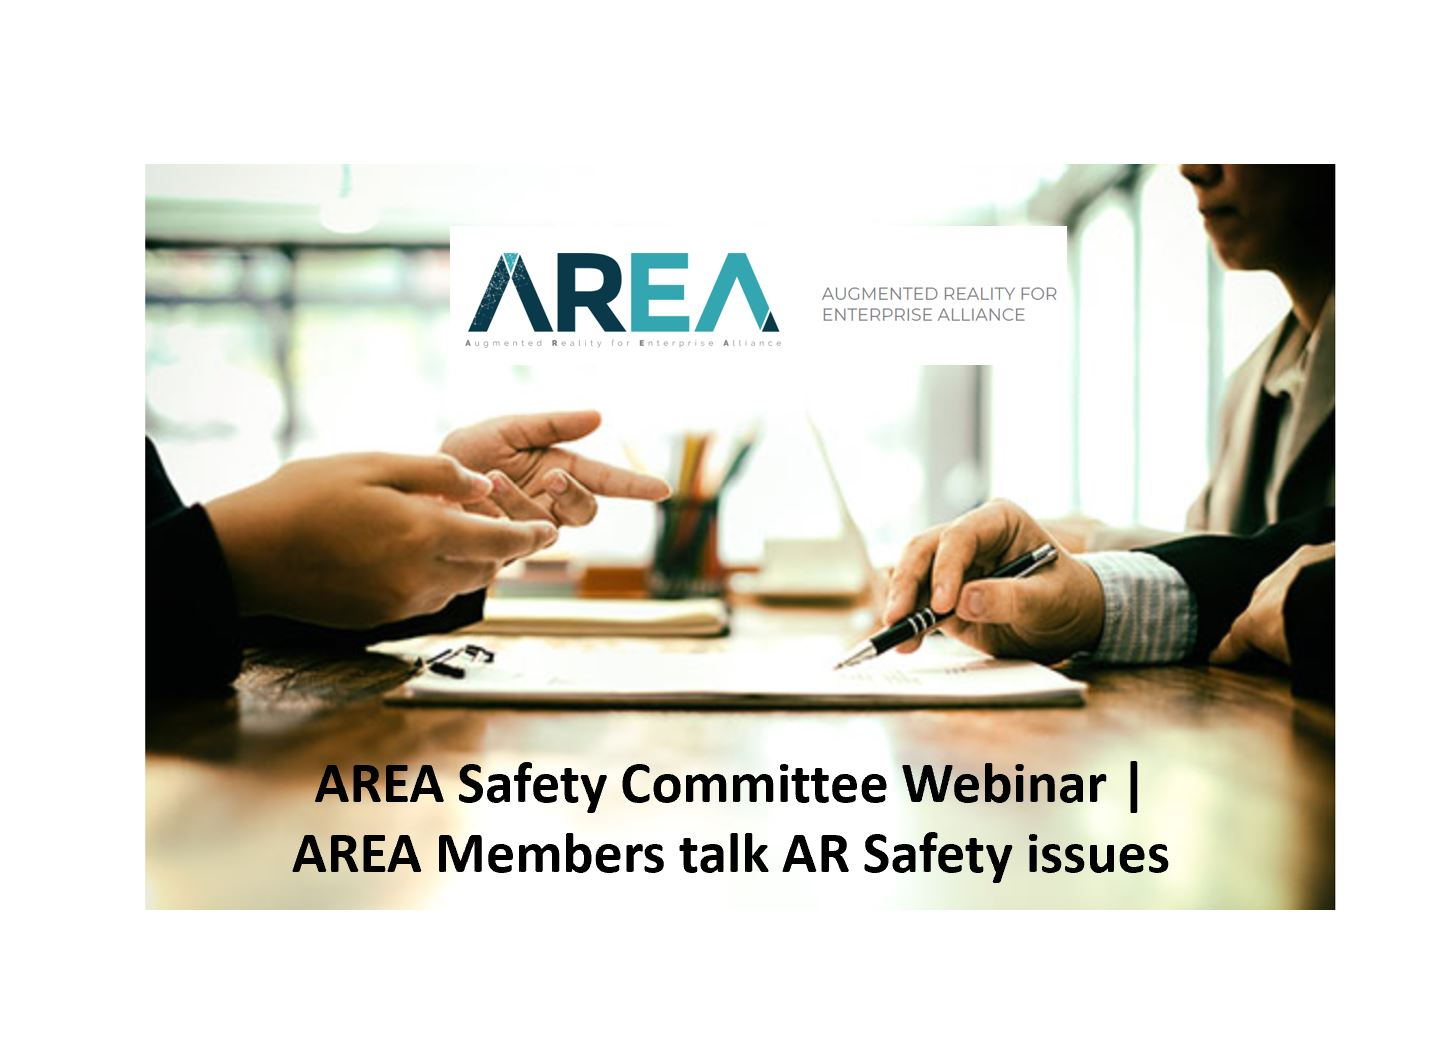 AREA Safety Committee Webinar   AREA Members talk AR Safety issues